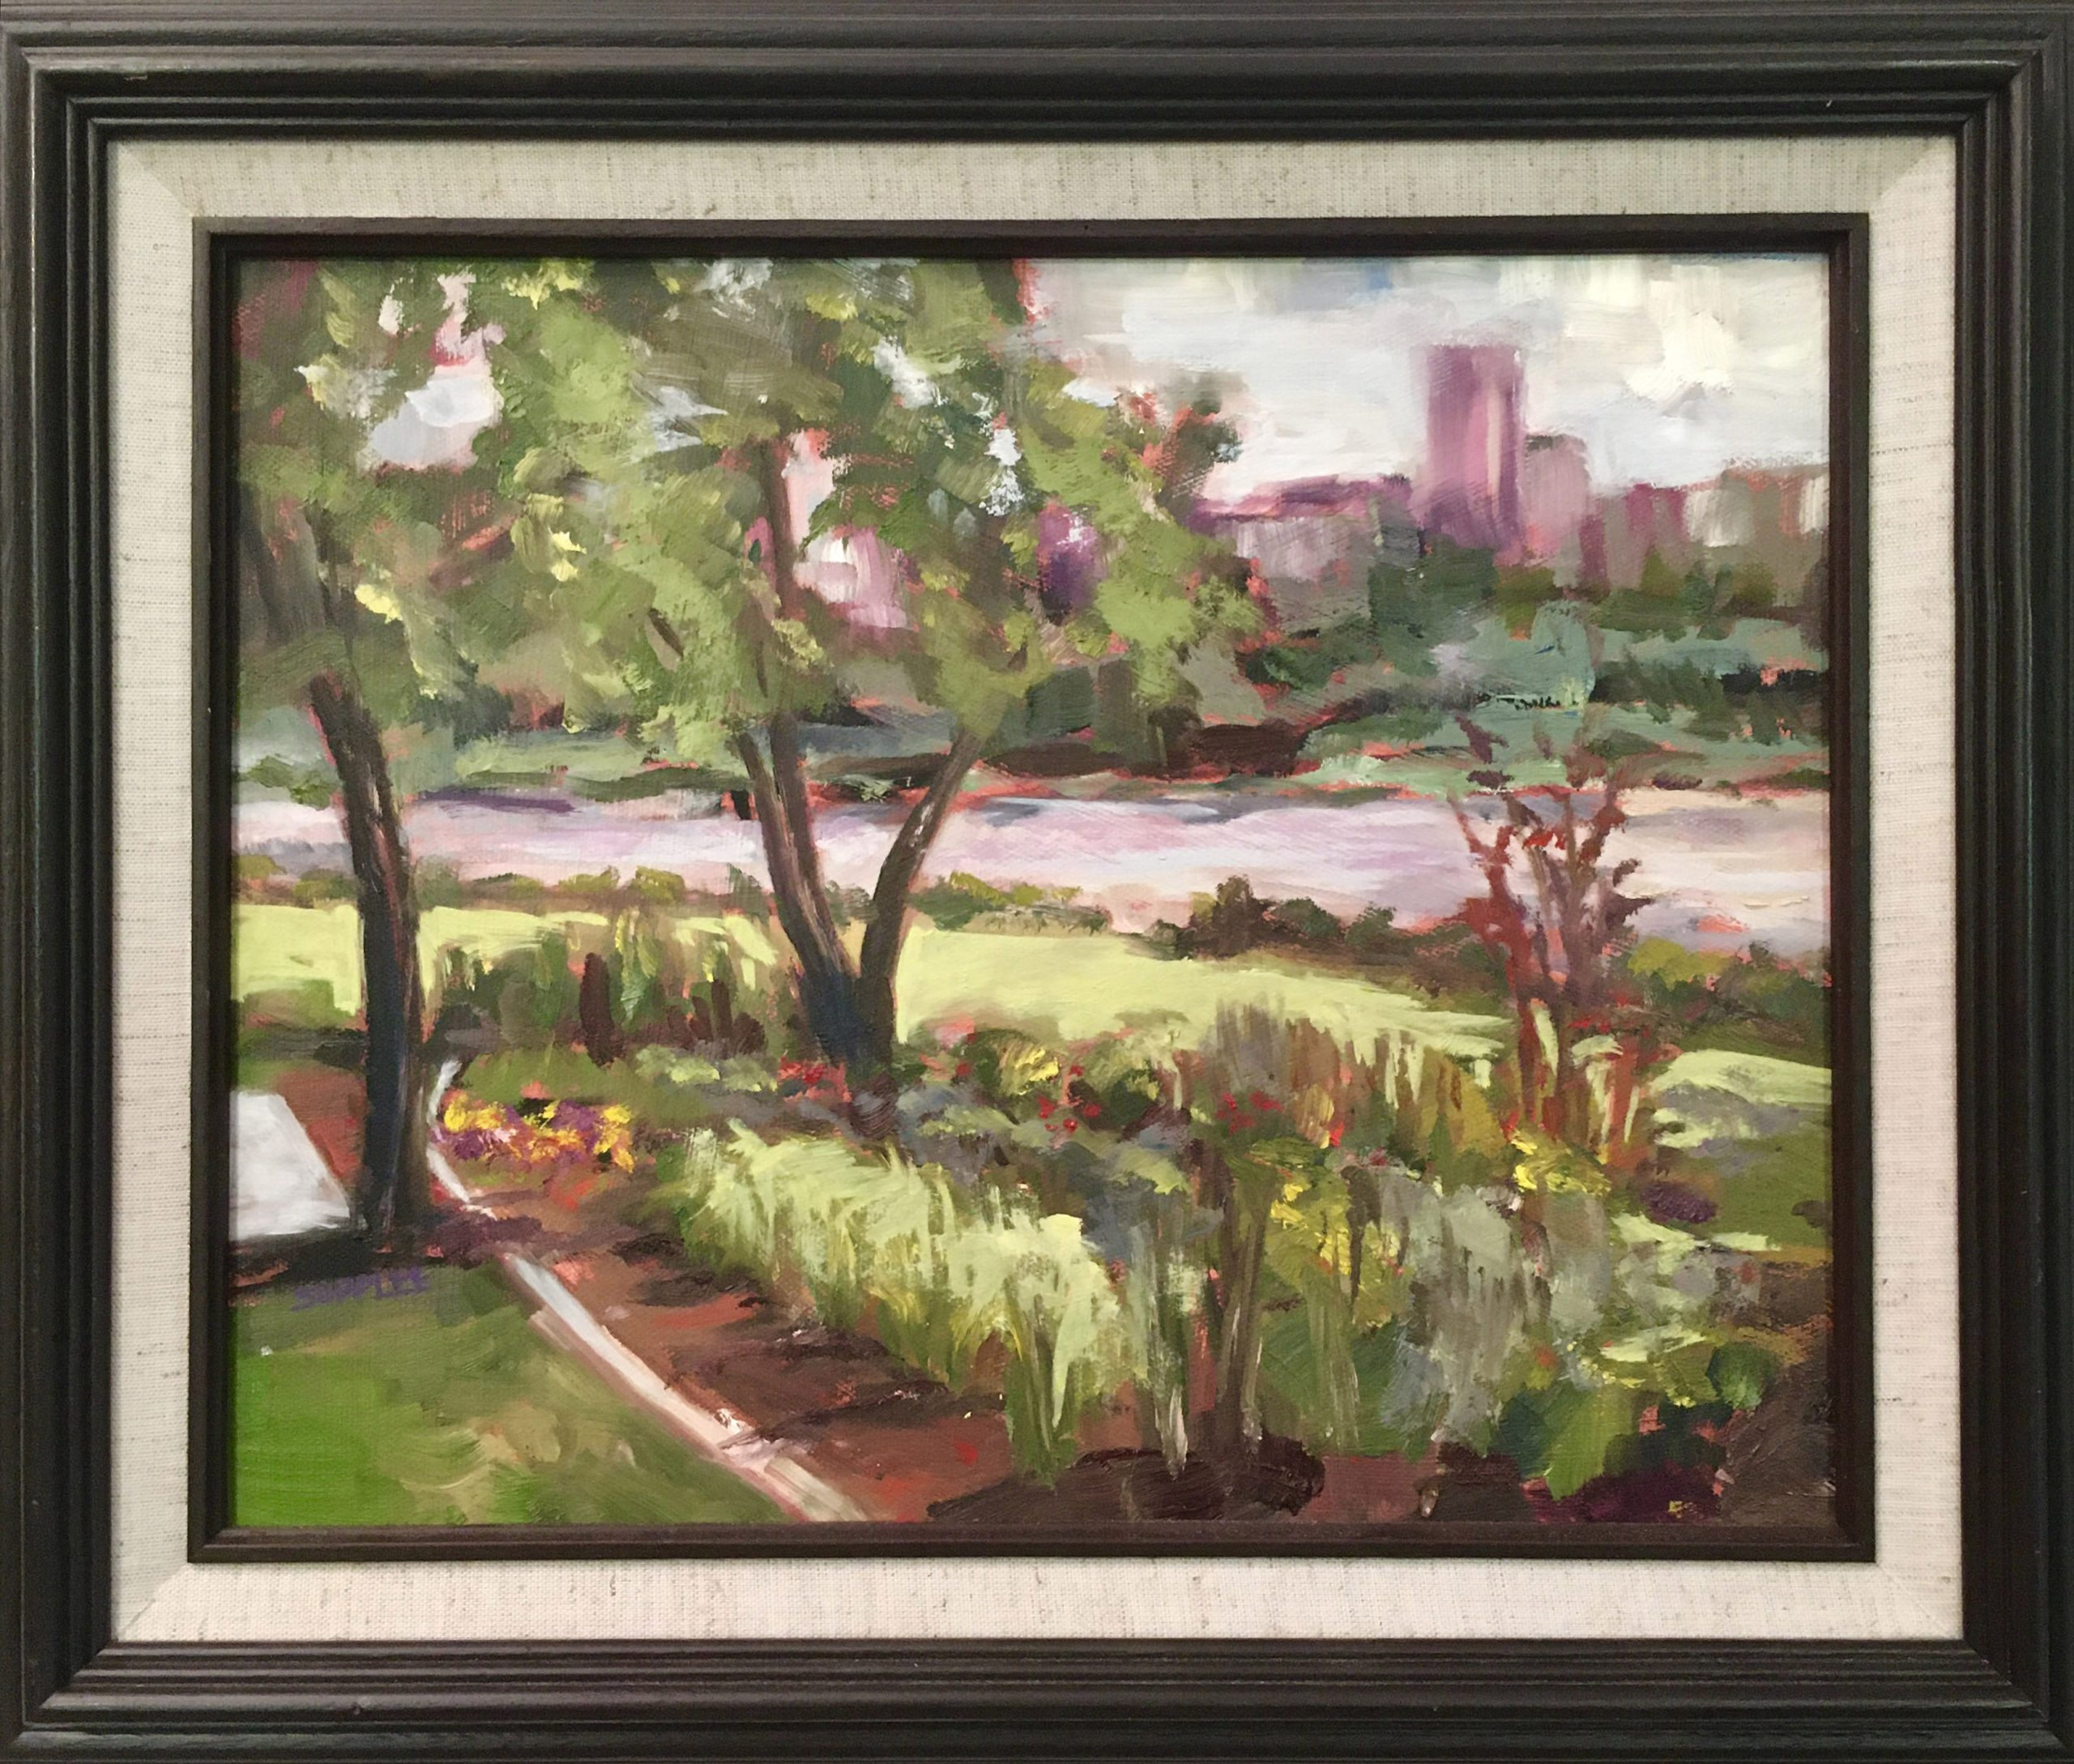 Riverside - Joan Delaney Supplee